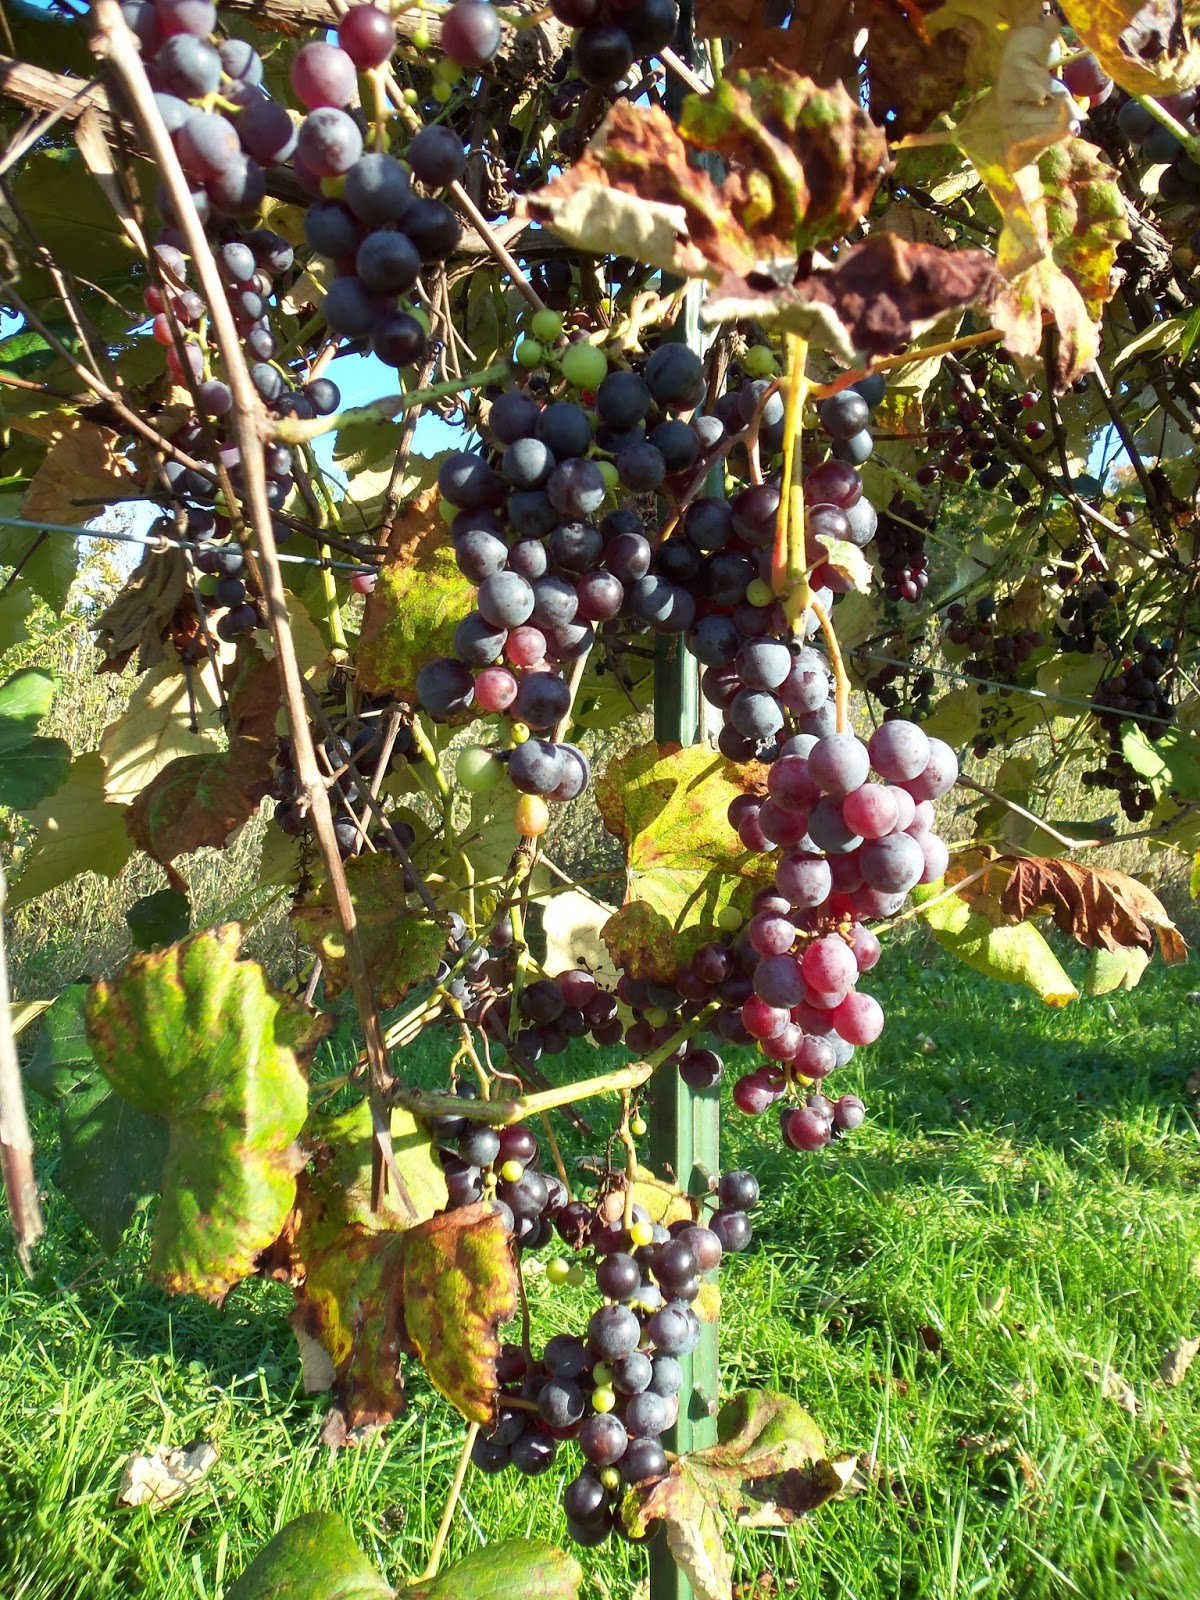 Whizbang Trellis Instruction A New Ideafor Growing Grapes